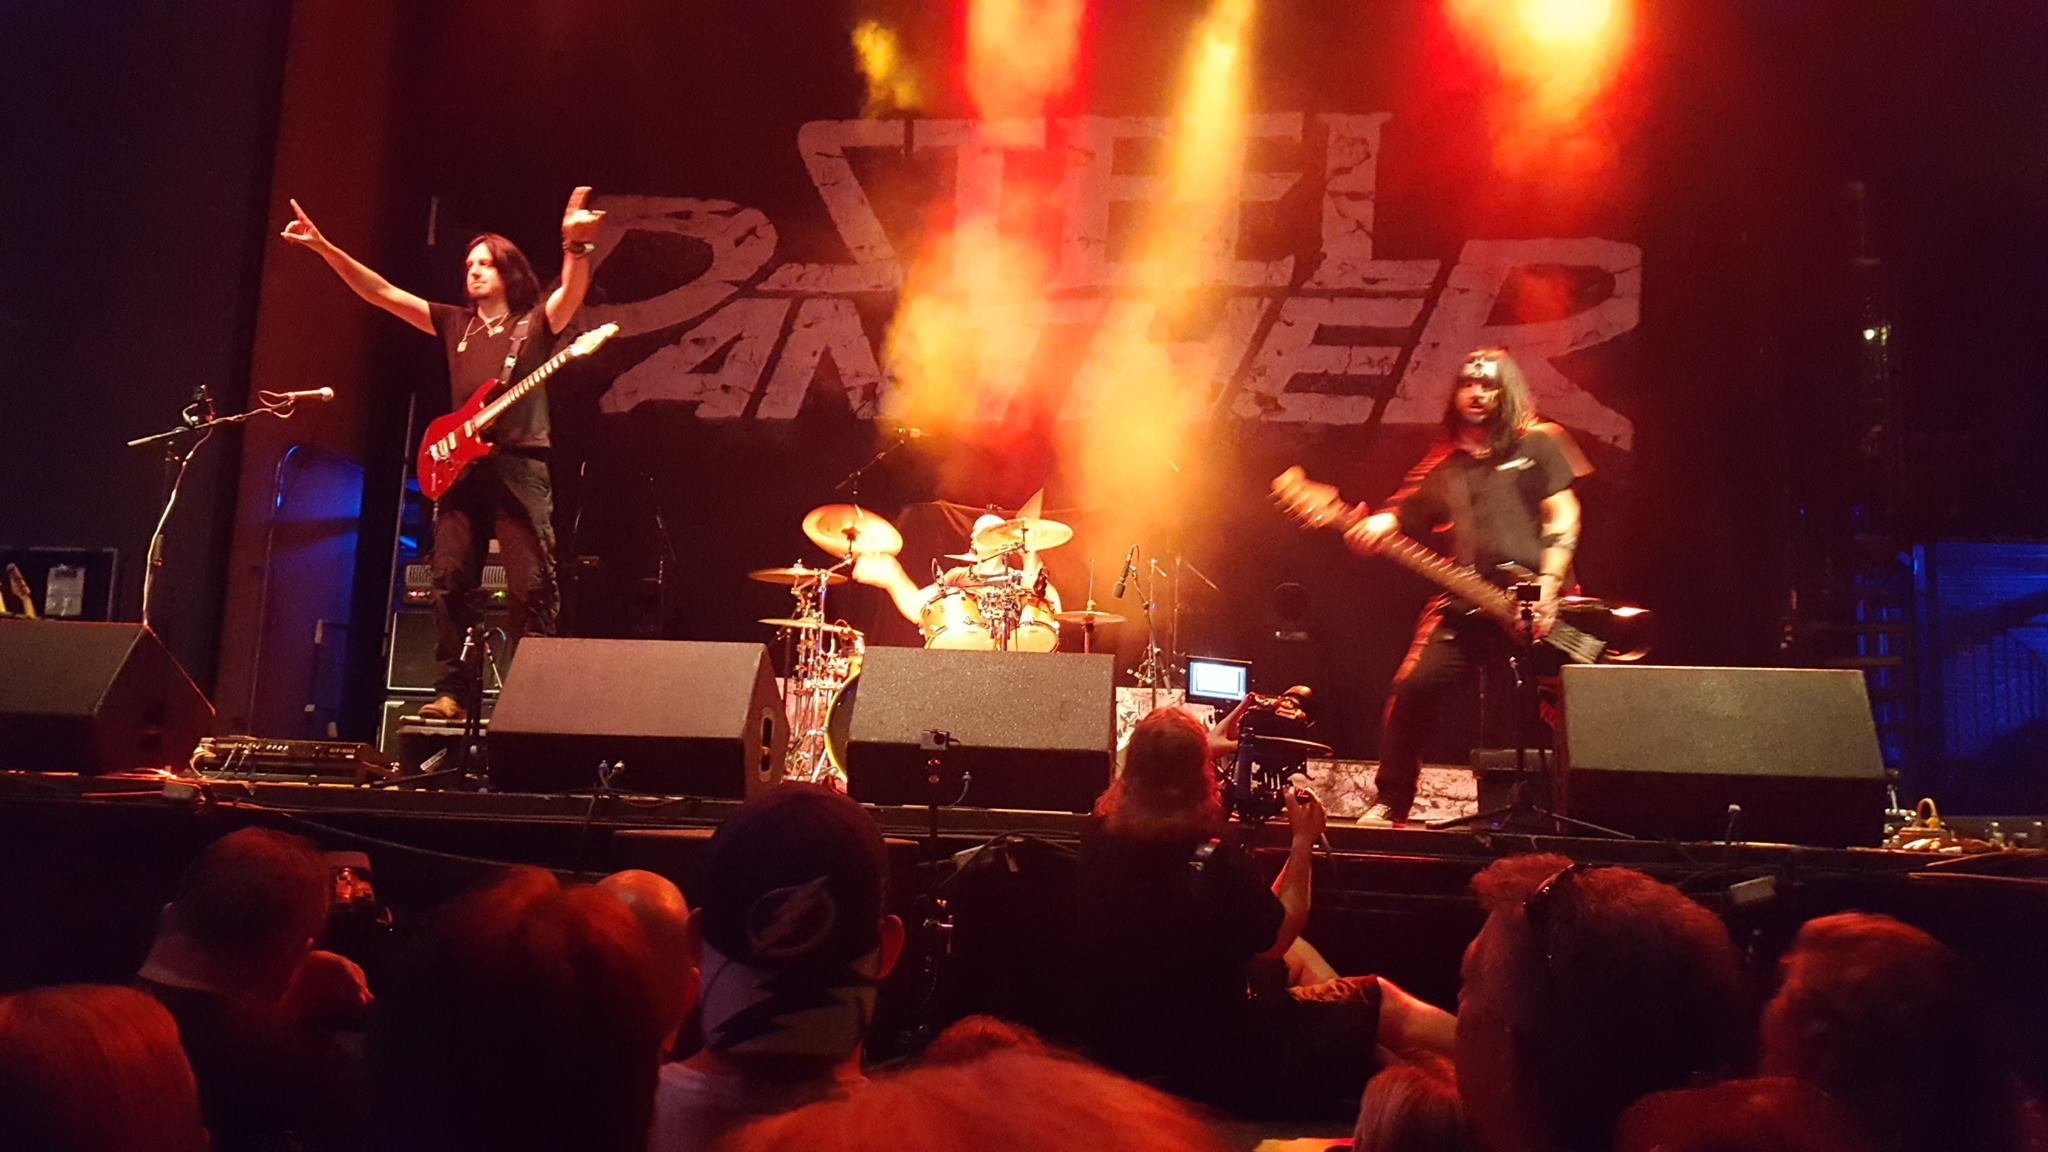 Jannus Live opening for Steel Panther